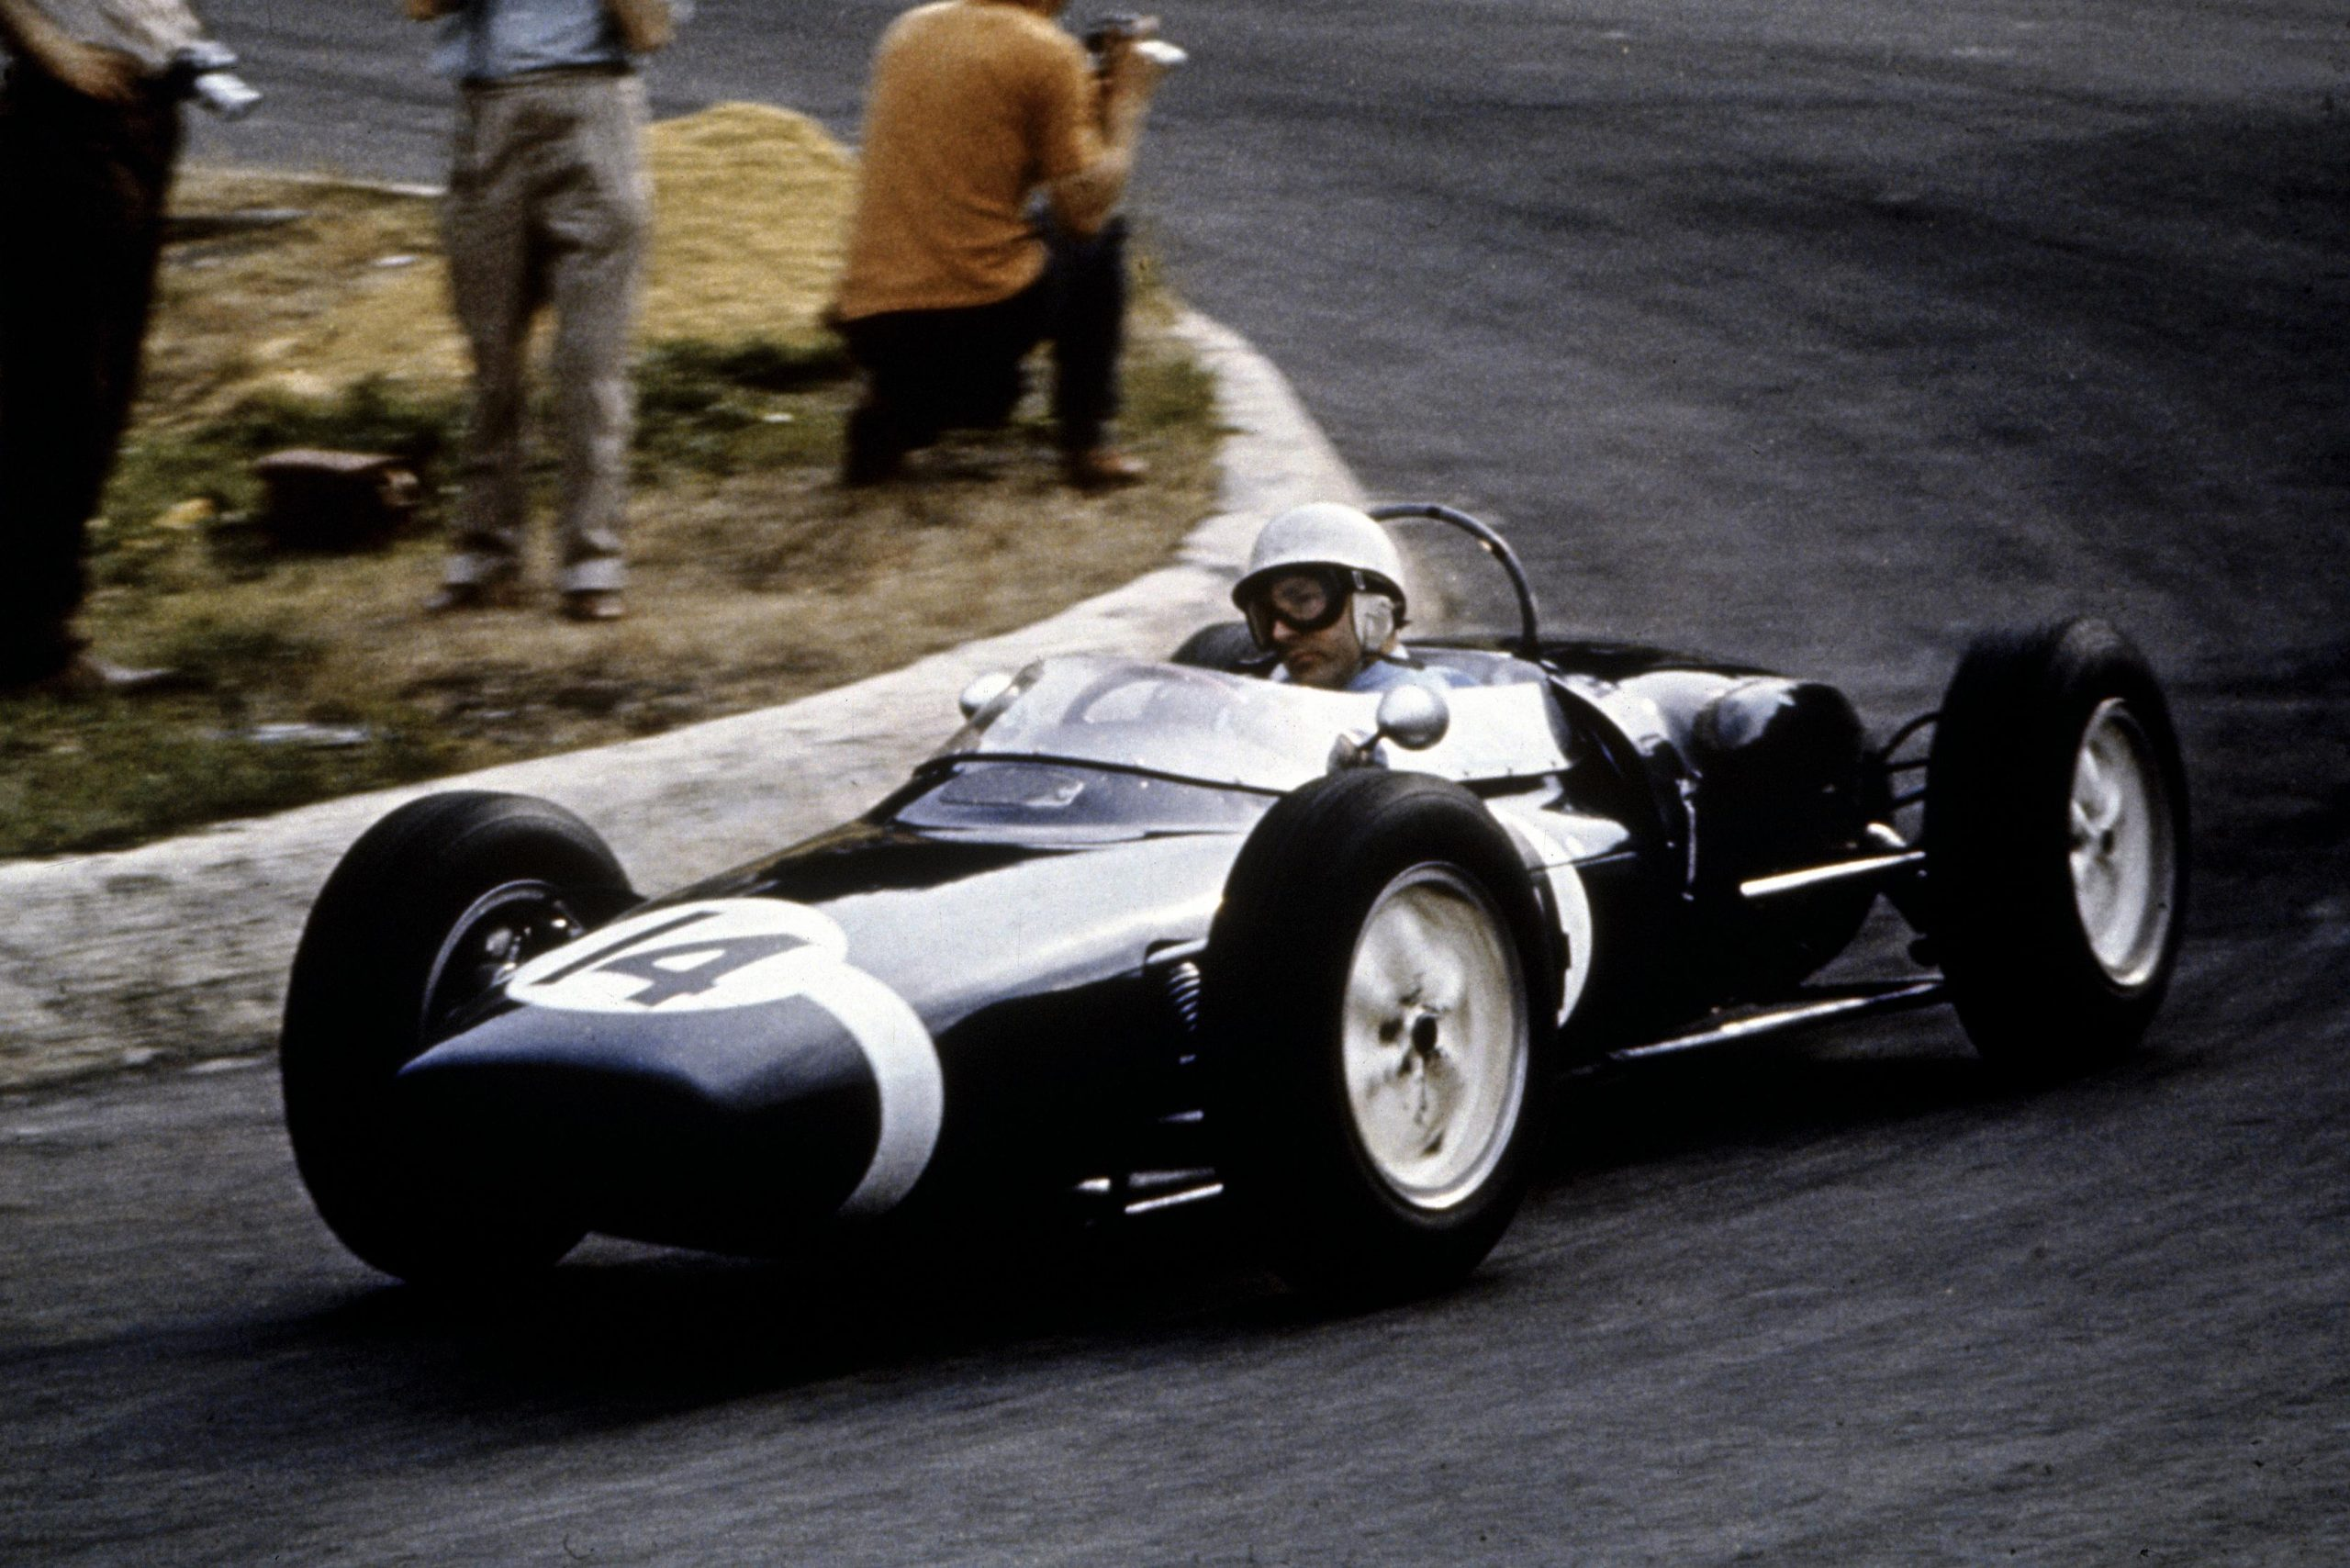 Stirling Moss in his Lotus 18/21.